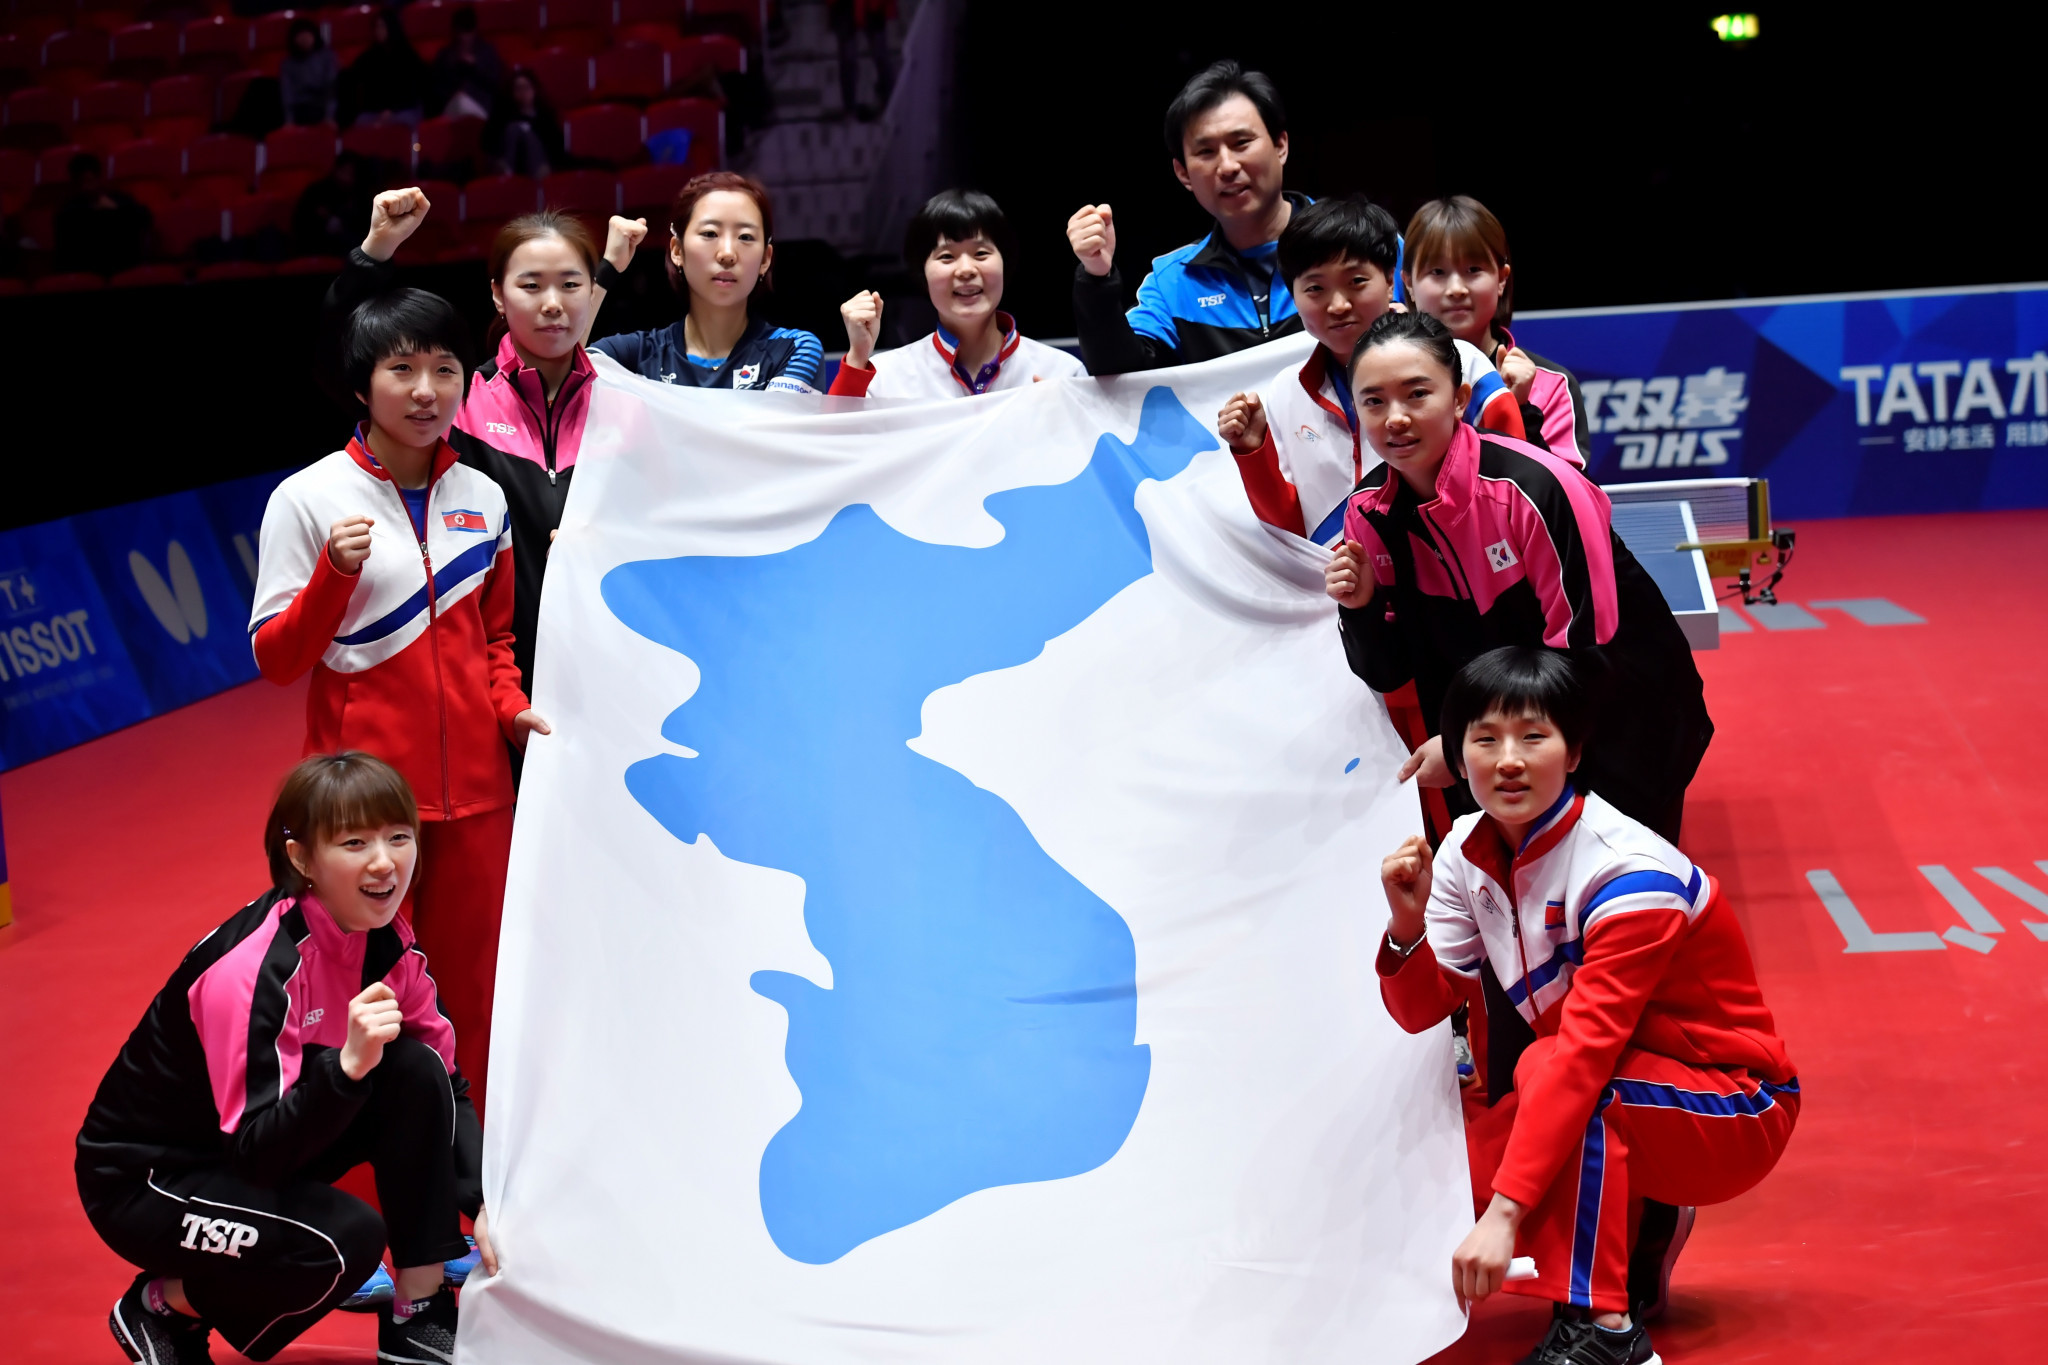 Unified North, South Korea TT team lose